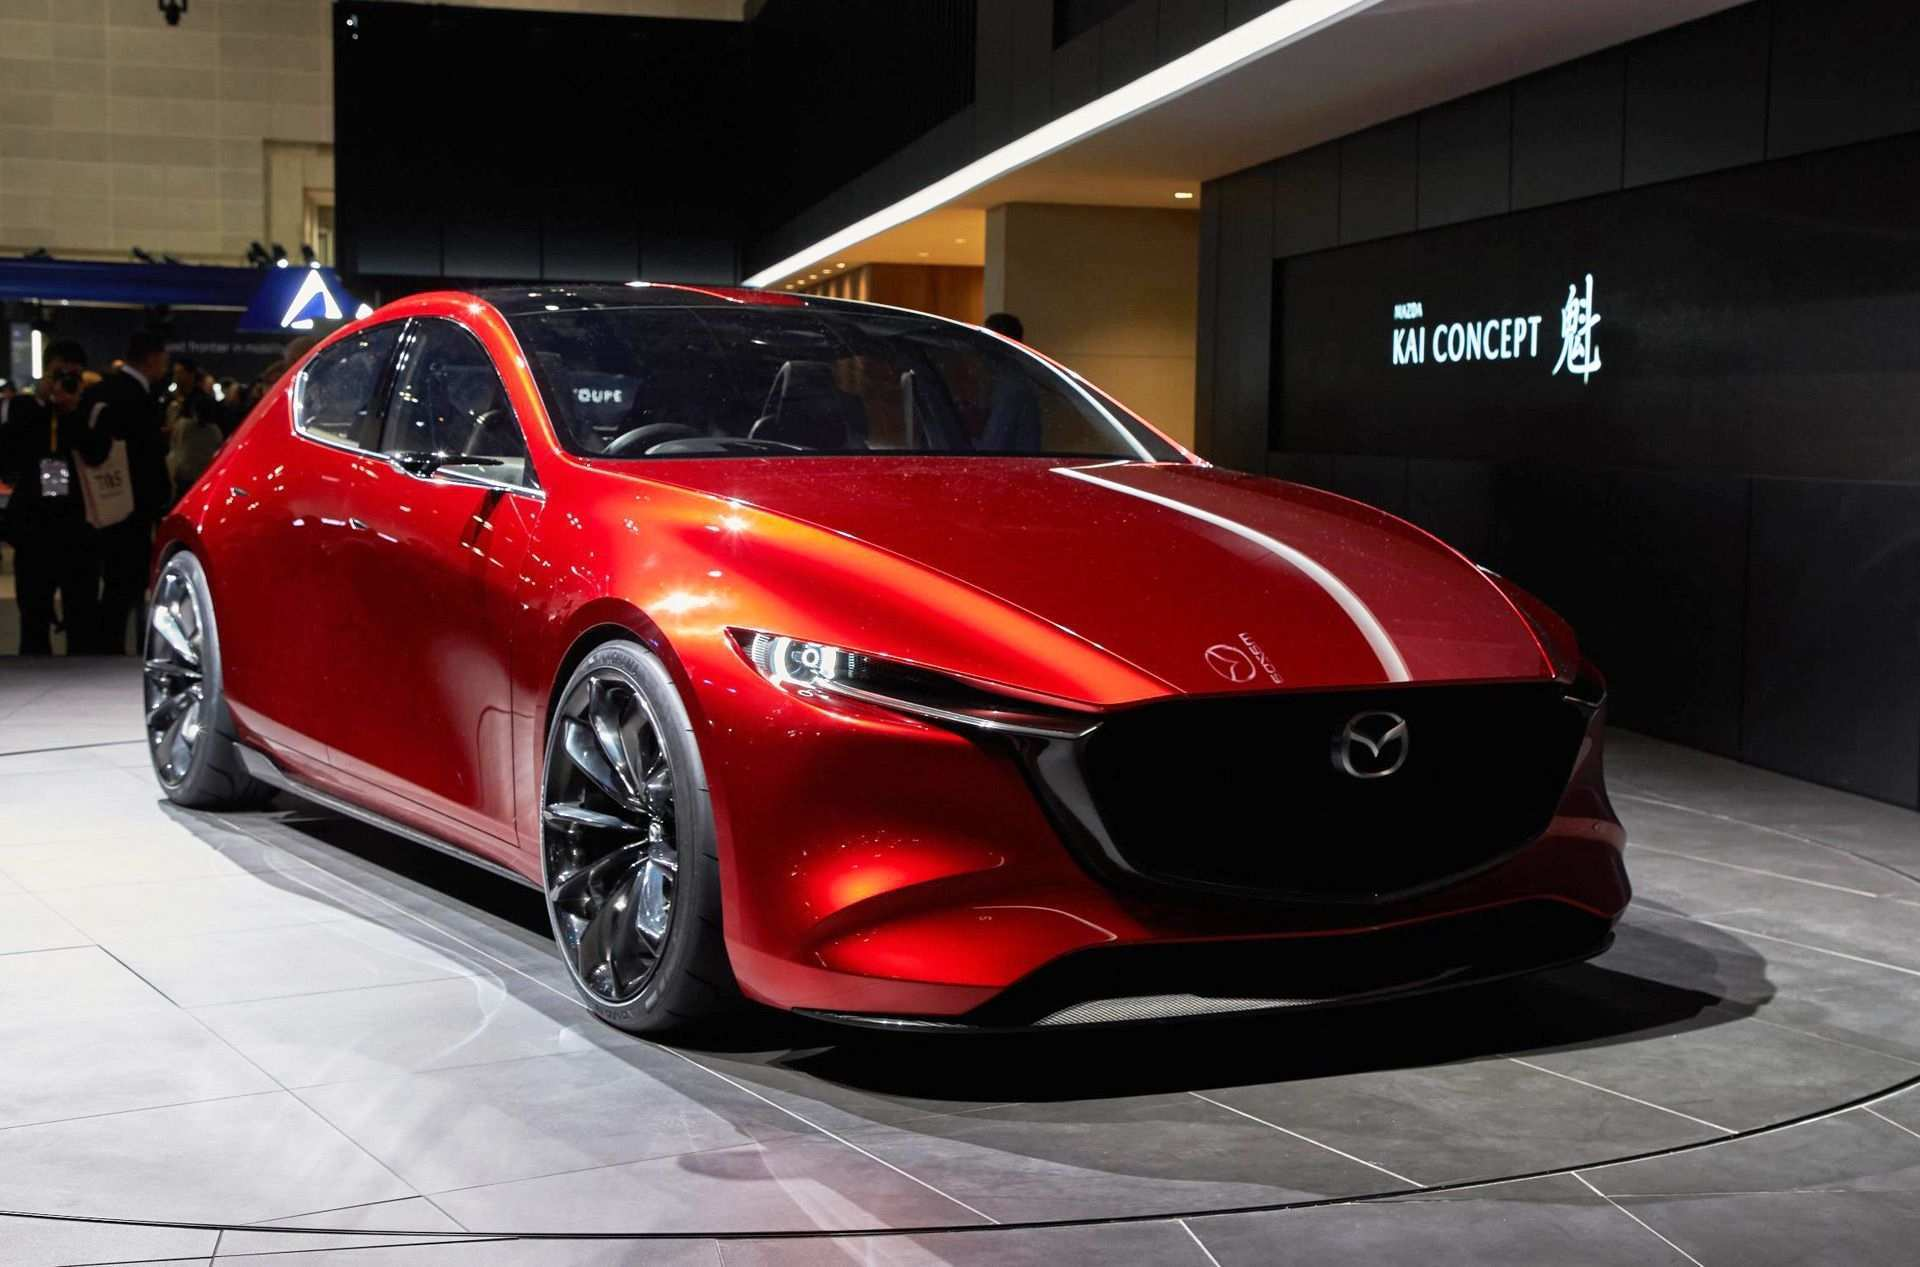 62 Best Review Best Mazda 3 2019 Price Release Date Price And Review Engine with Best Mazda 3 2019 Price Release Date Price And Review